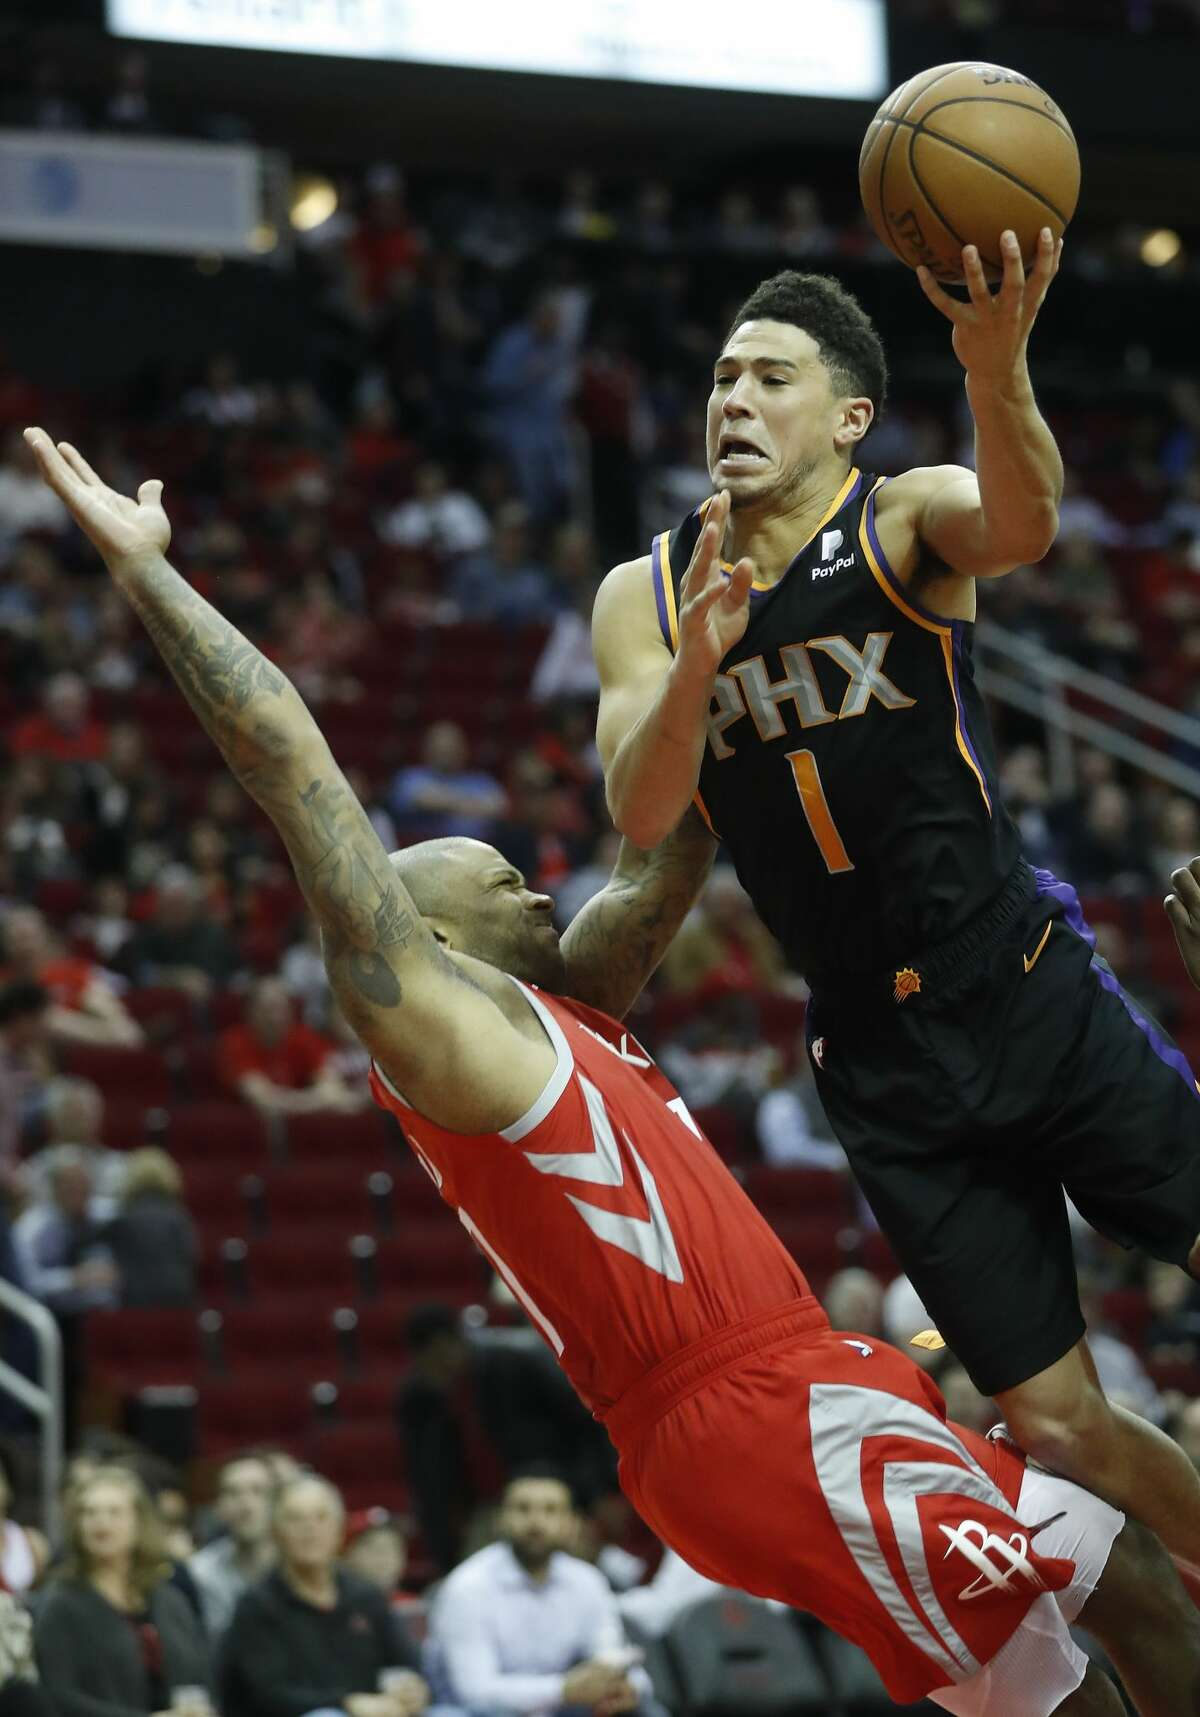 Phoenix Suns guard Devin Booker (1) knocks down Houston Rockets forward PJ Tucker (17) on his way to the basket during the second half of an NBA game at Toyota Center, Friday, March 15, 2019, in Houston. Rockets won the game 108-102.